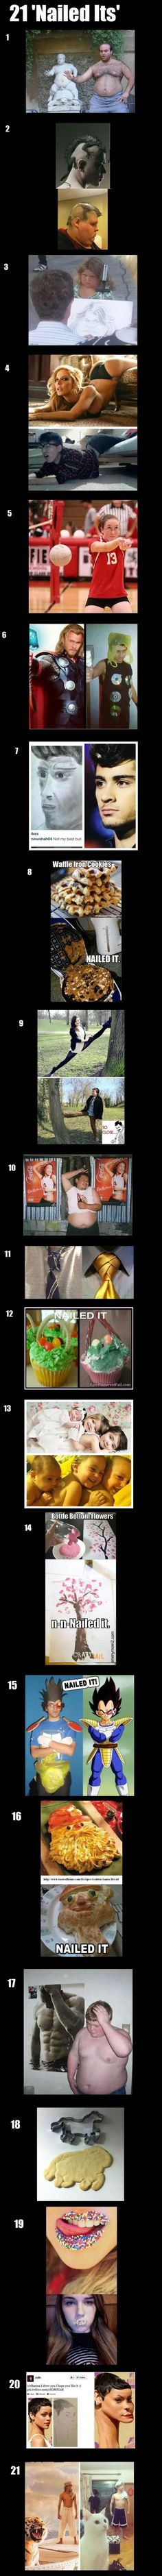 Nailed It! pinterest and other attempts gone wrong hahaha More funny pictures at funiest-stuff.com #uploadfunny #funnyvideos #uploadvideos